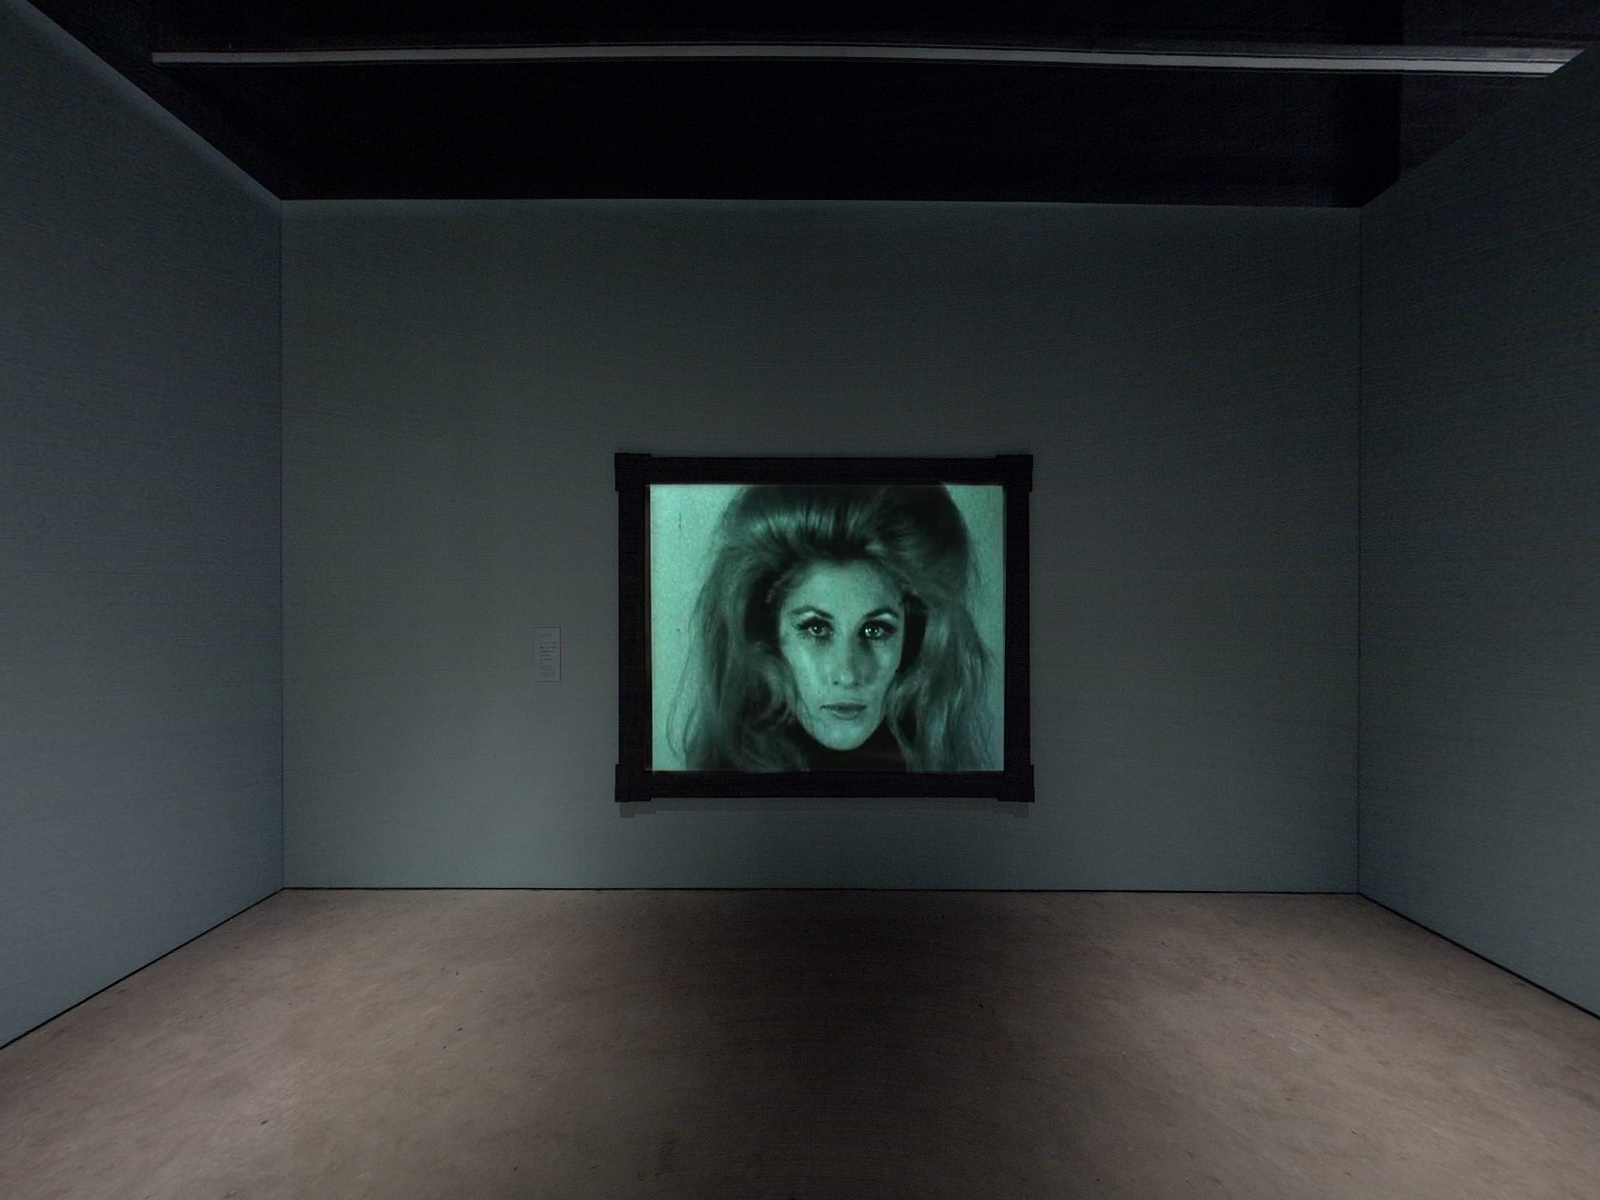 Installation view of Andy Warhol: Screen Tests at The Museum of Modern Art, New York